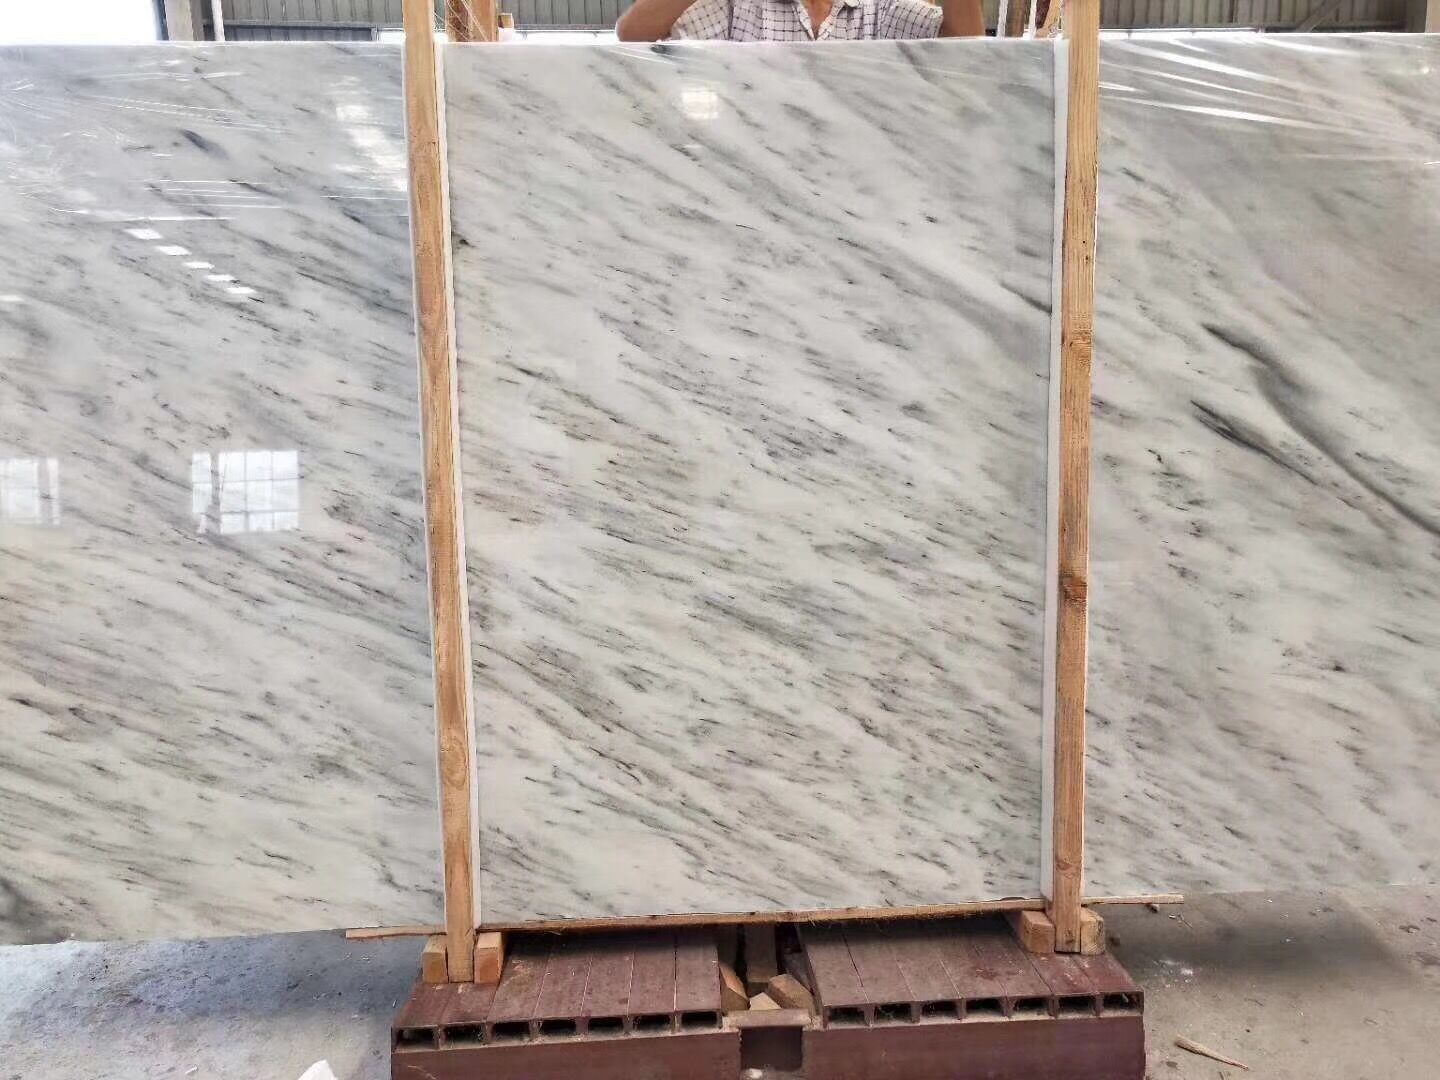 Telas White Marble Slab & Tiles White Polished Marble Floor Tiles Wall Tiles